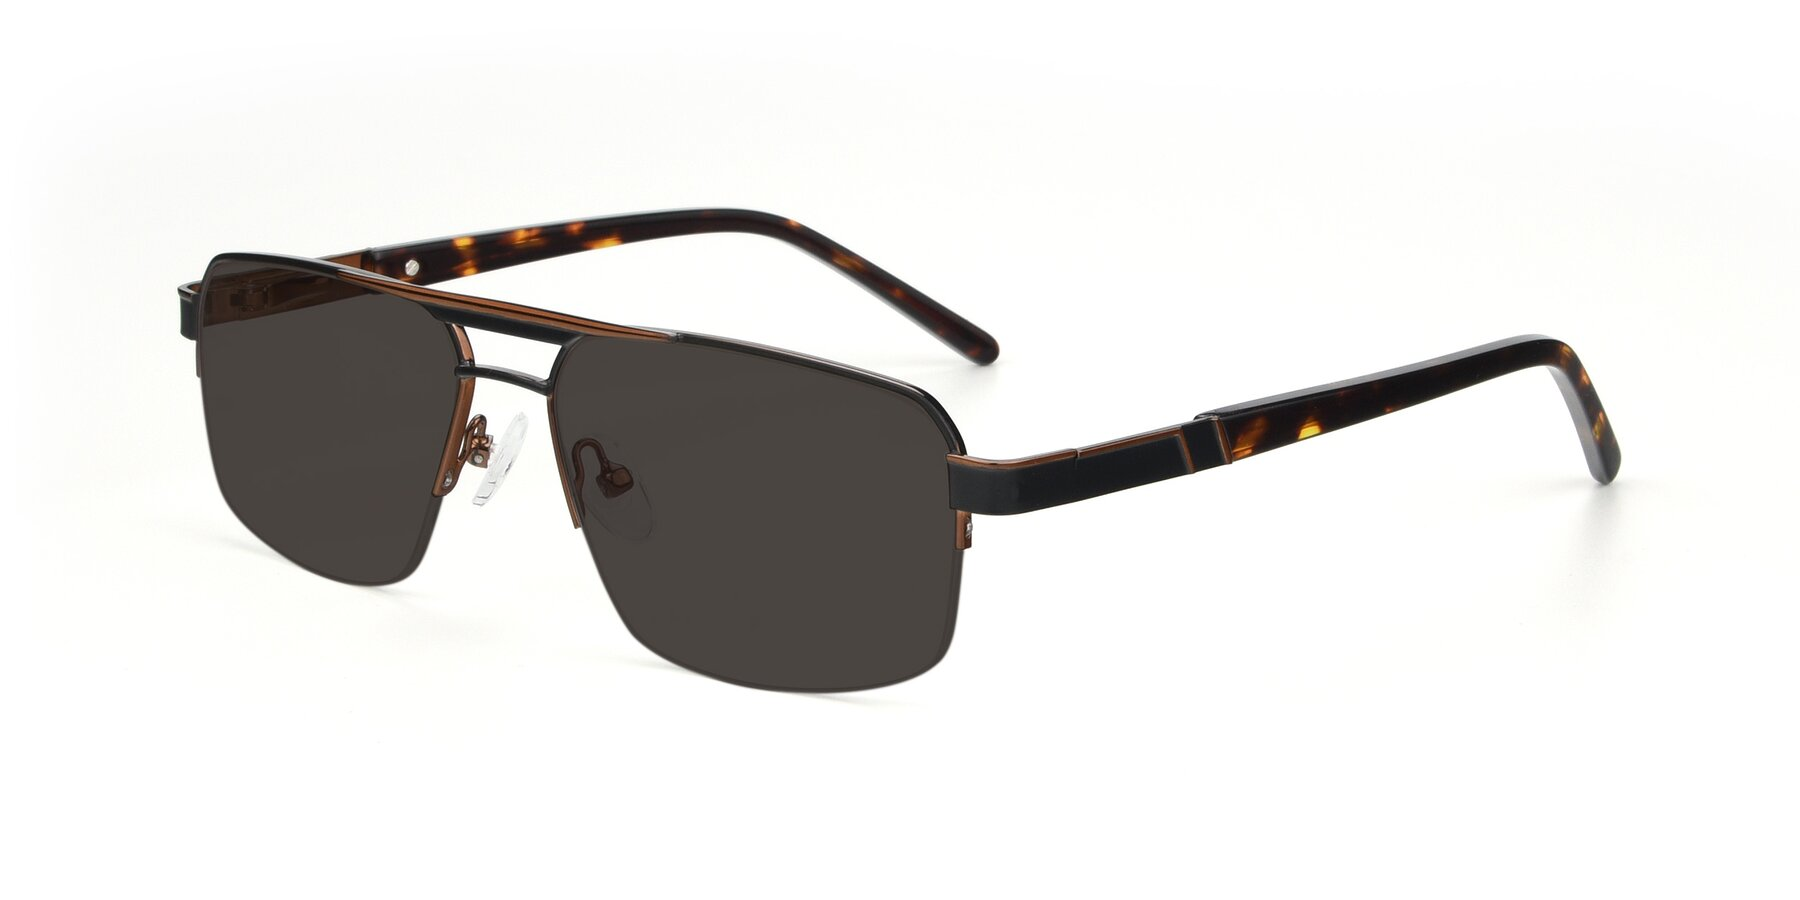 Angle of 19004 in Black-Bronze with Gray Tinted Lenses